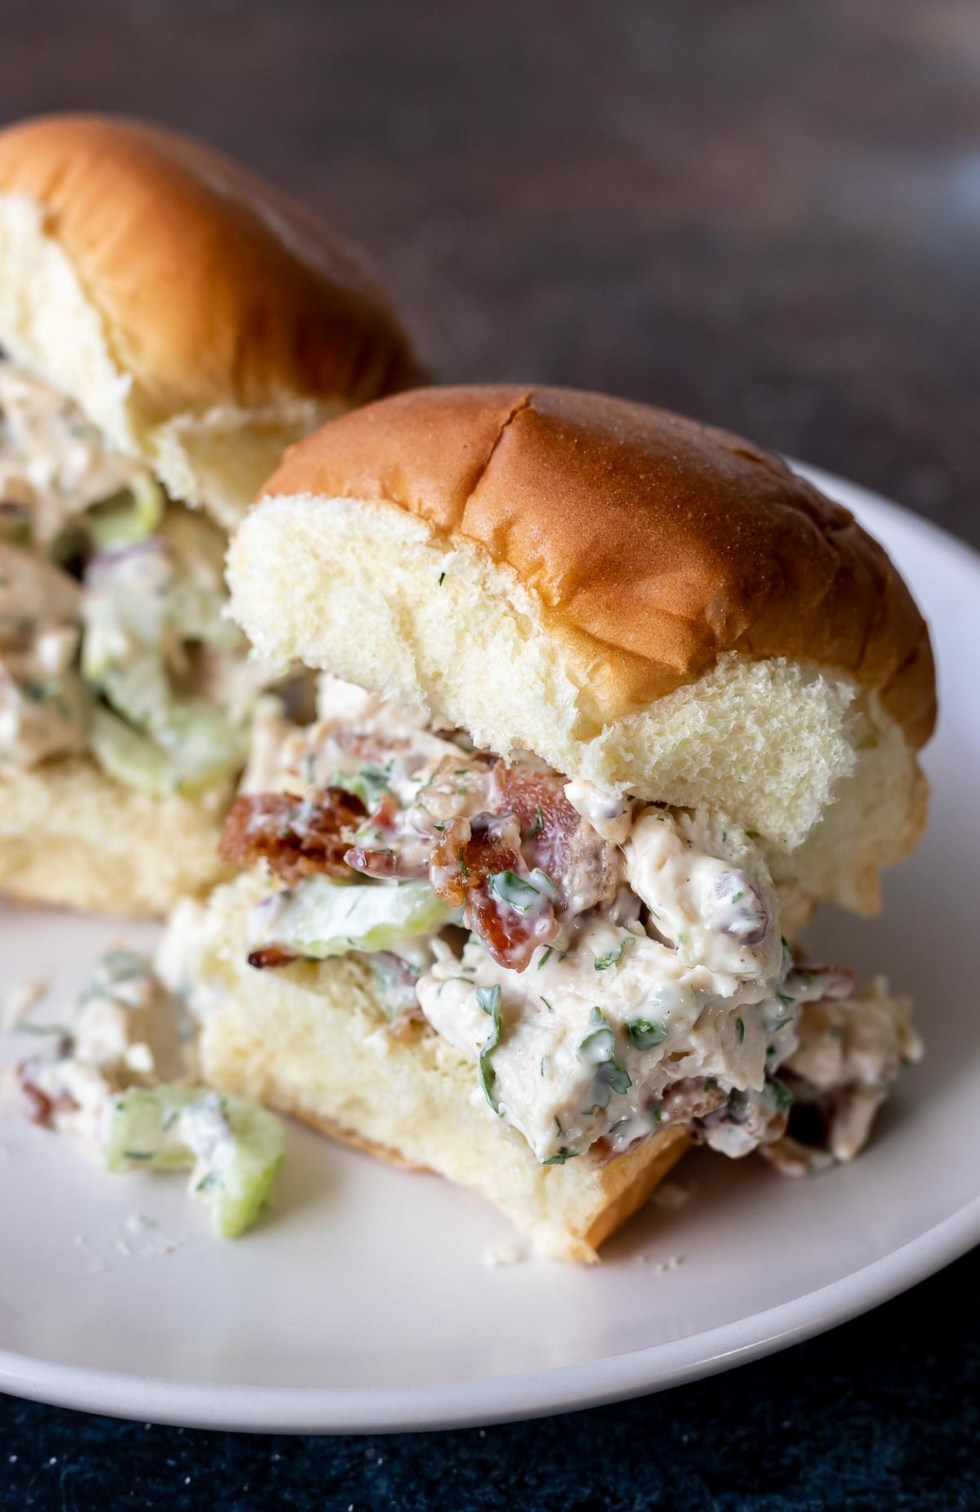 chicken salad on roll served on white plate